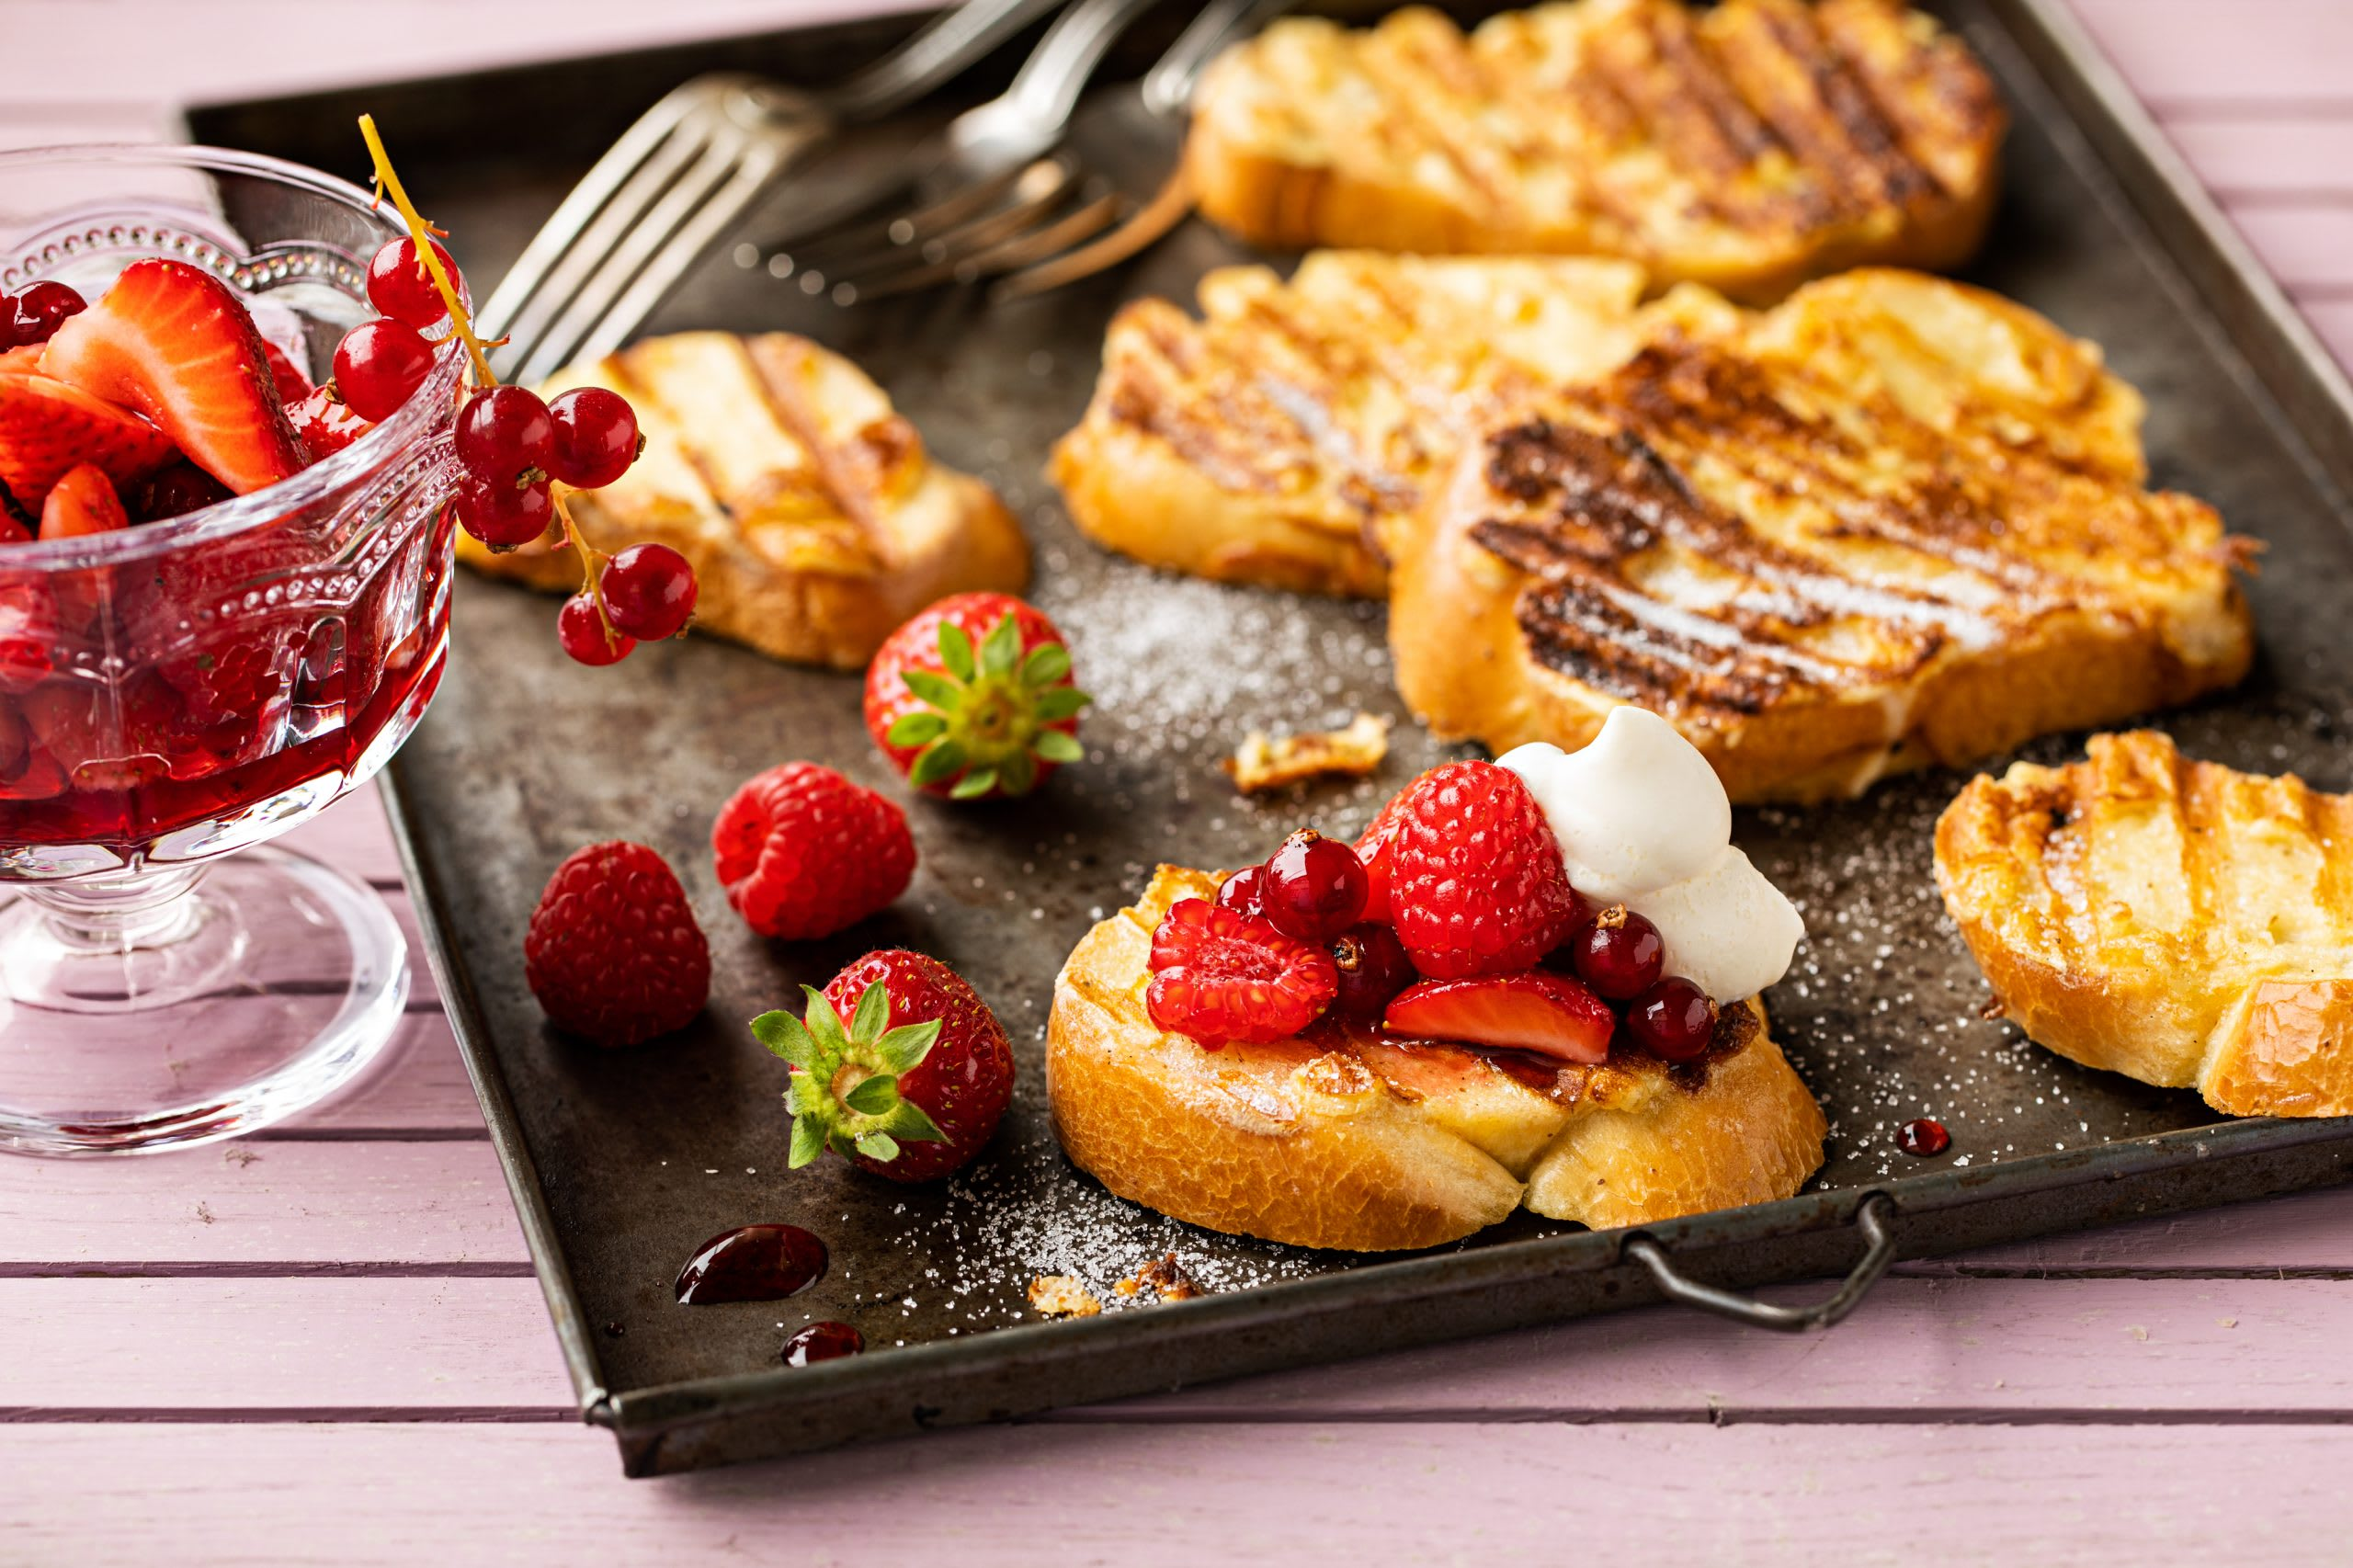 Pain perdu aux fruits rouges au barbecue